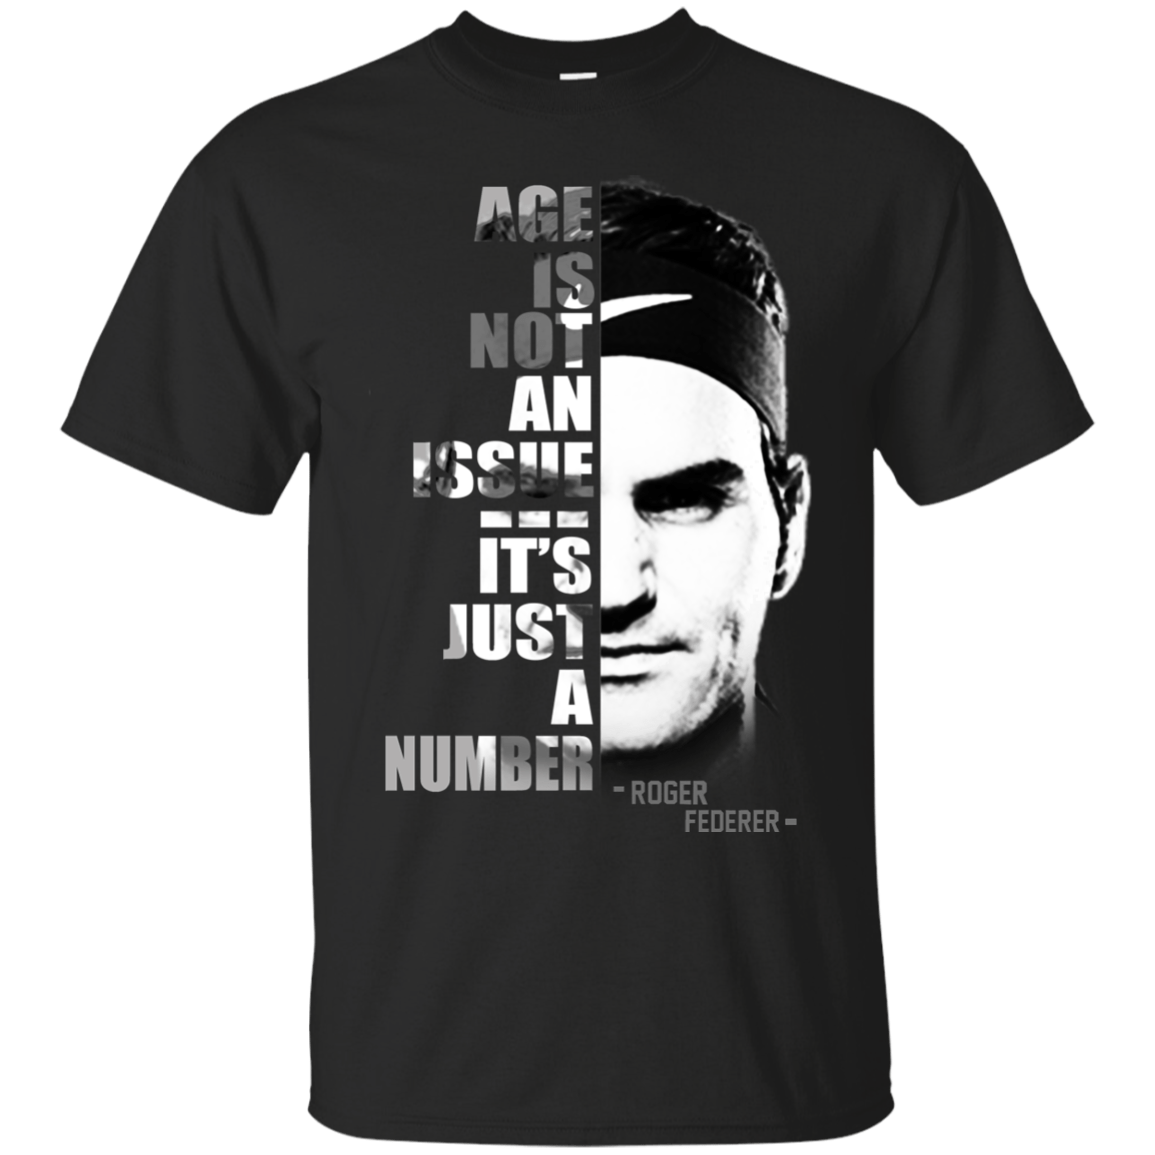 Gildan Pullover Sweatshirt Size Chart Roger Federer – Age Is Not An Issue – It's Just A Number Shirt